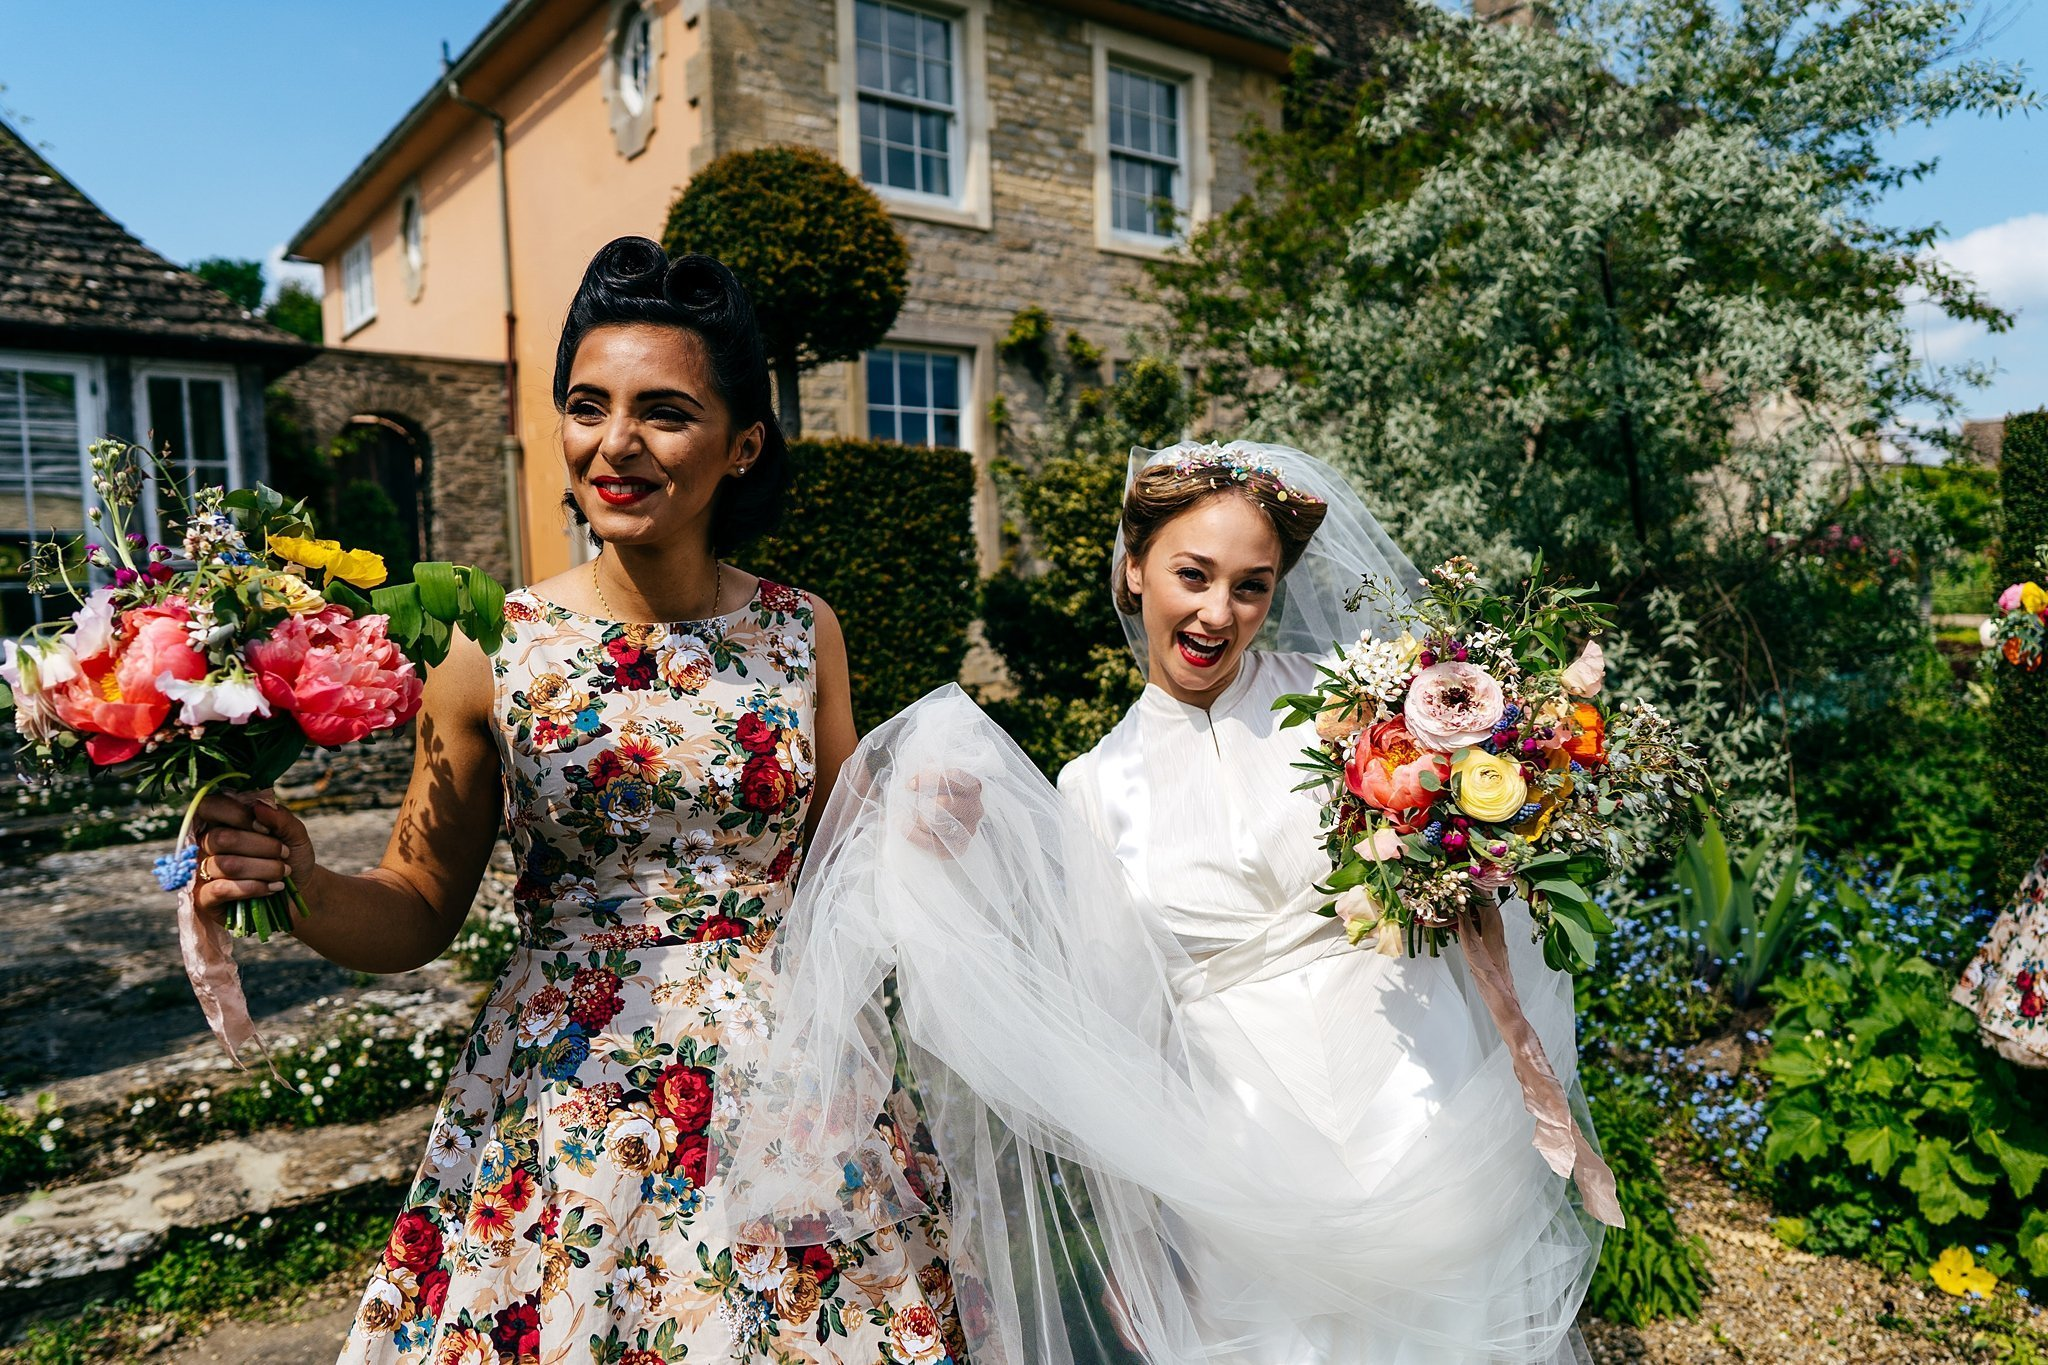 Second hand Vintage Wedding Dress as a Green Option for the Eco concious bride